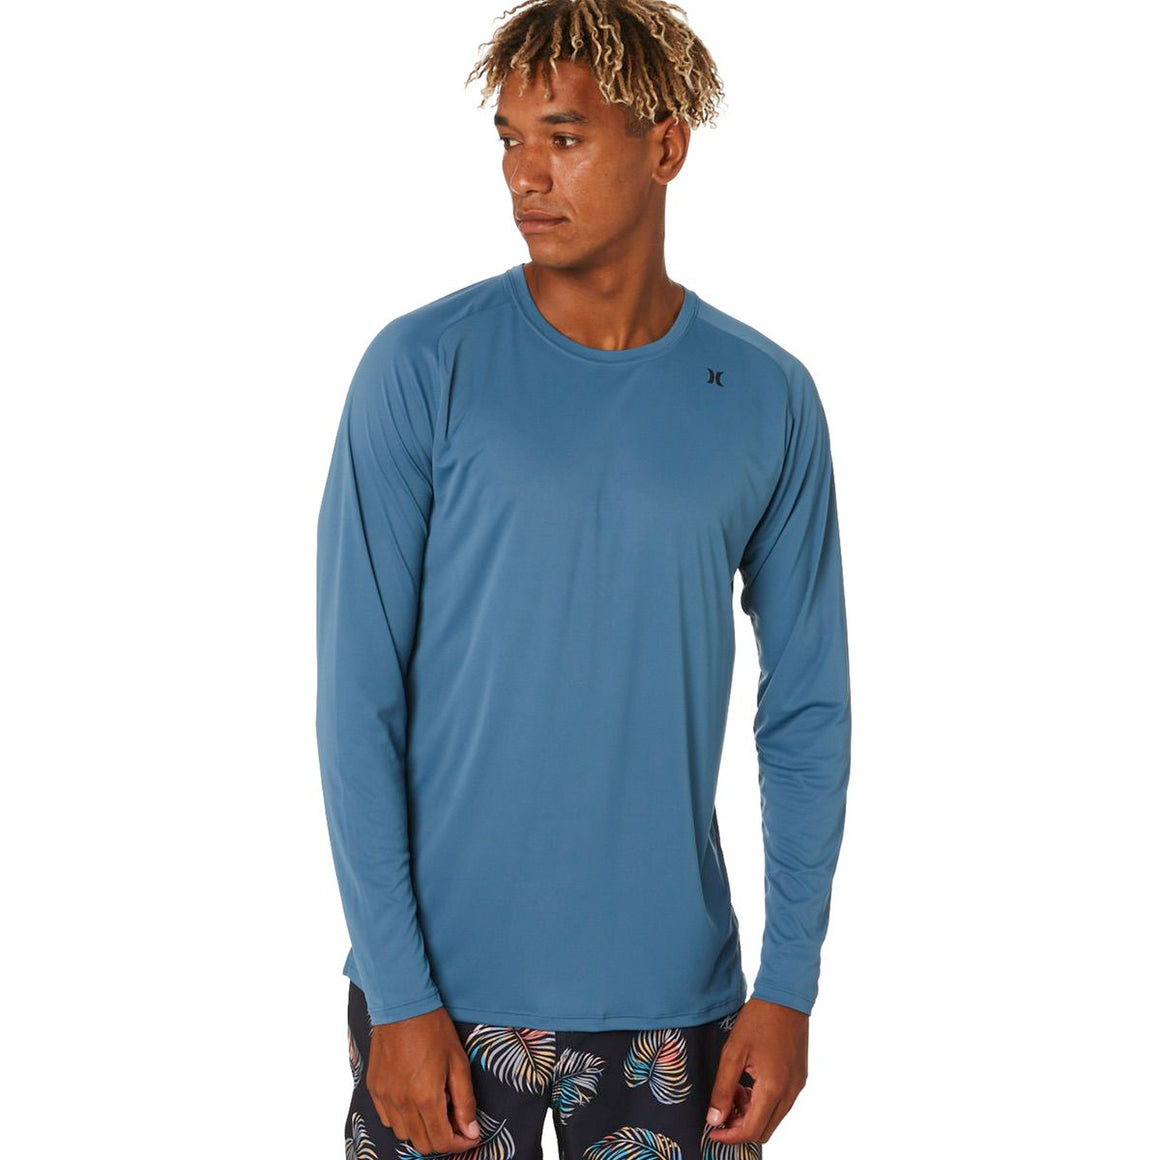 Men's Rashies Hurley Quick Dry T-Shirt L/S - Thunderstorm